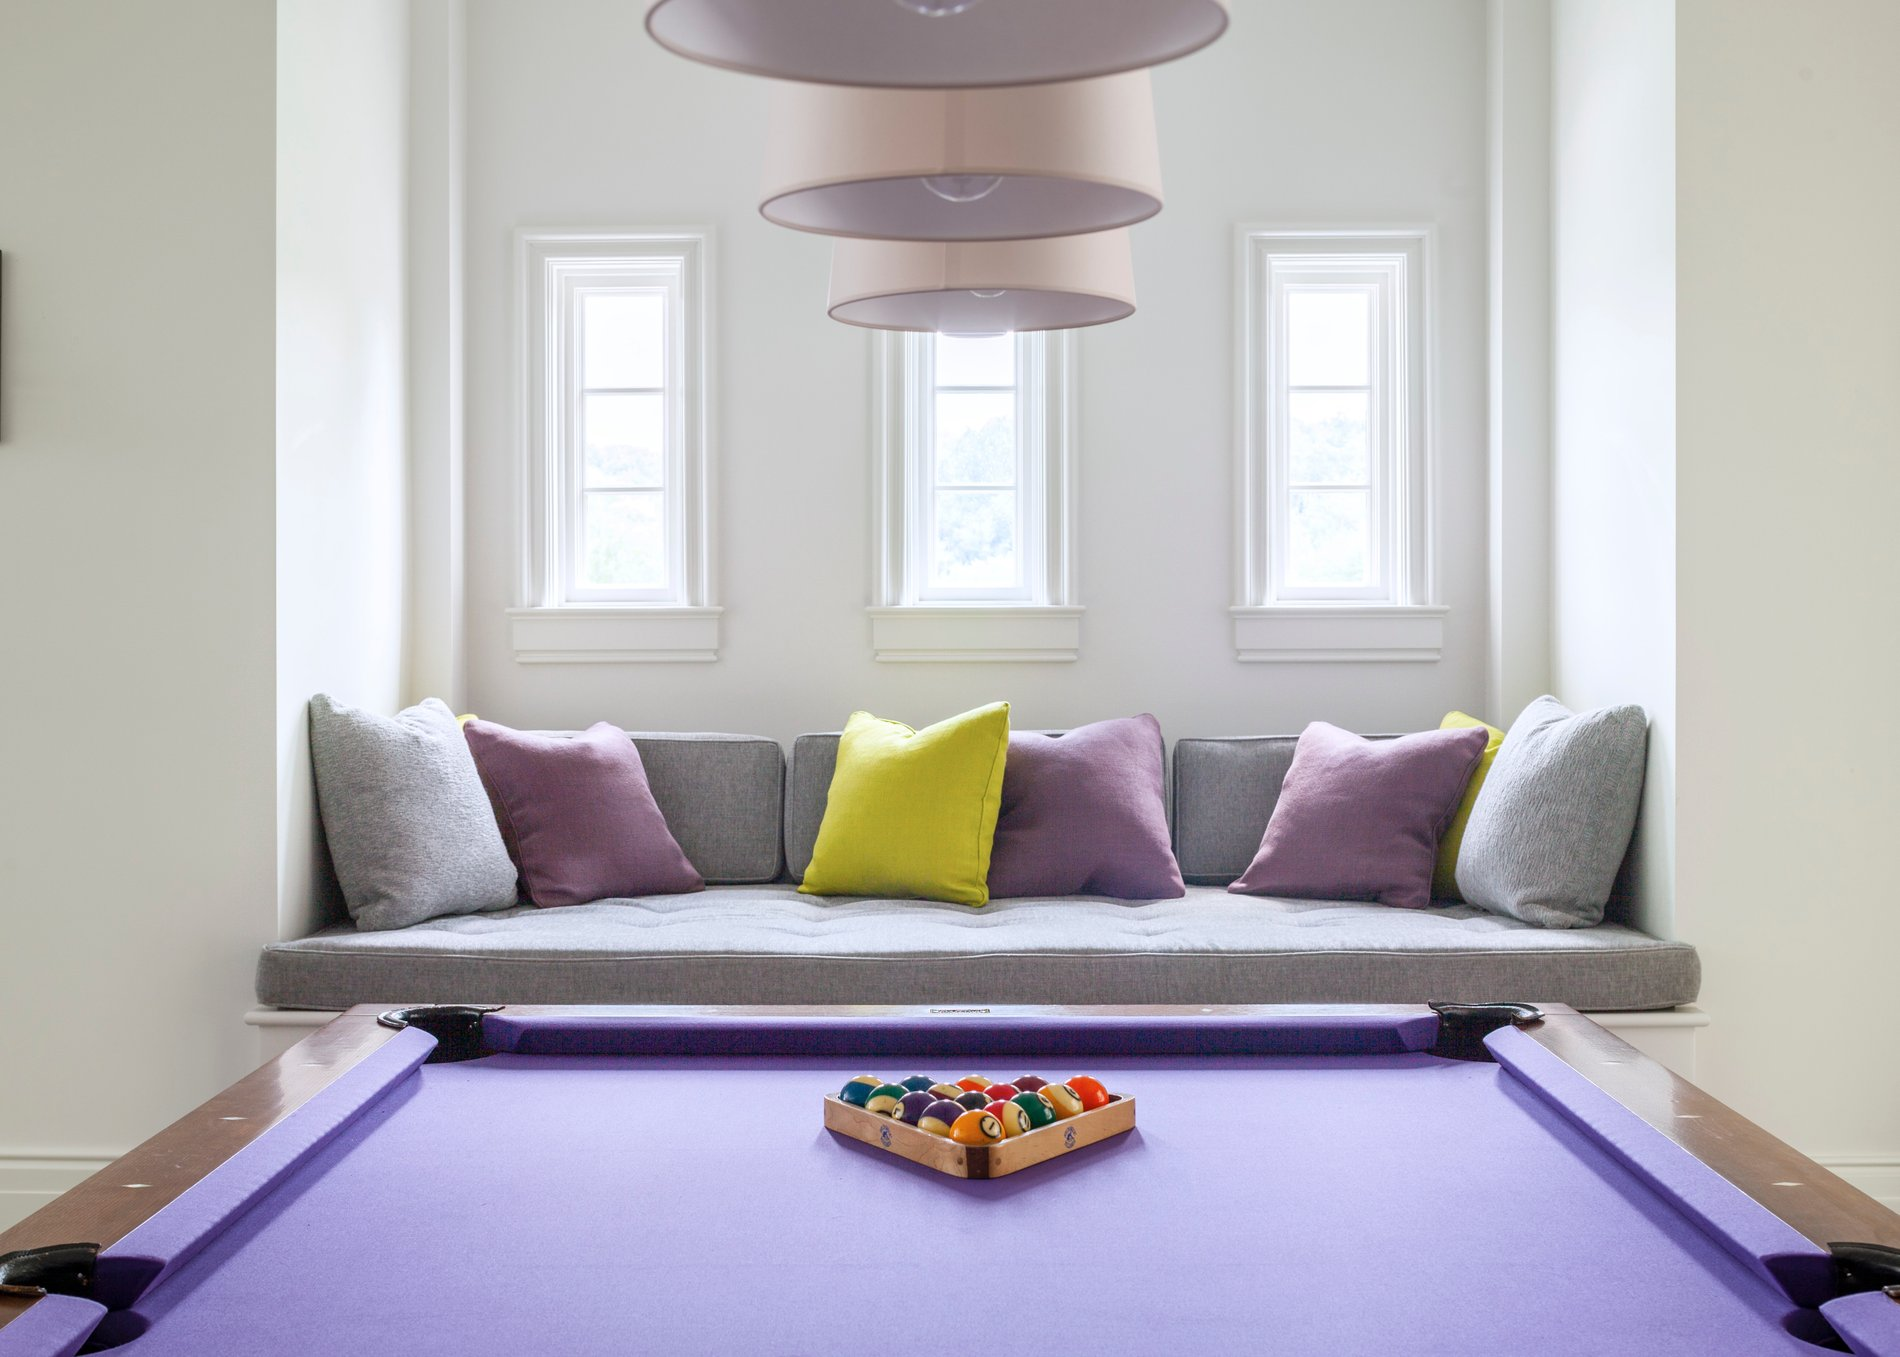 Modern window seat in front of 3 rectangular windows in a game room featuring a purple pool table.